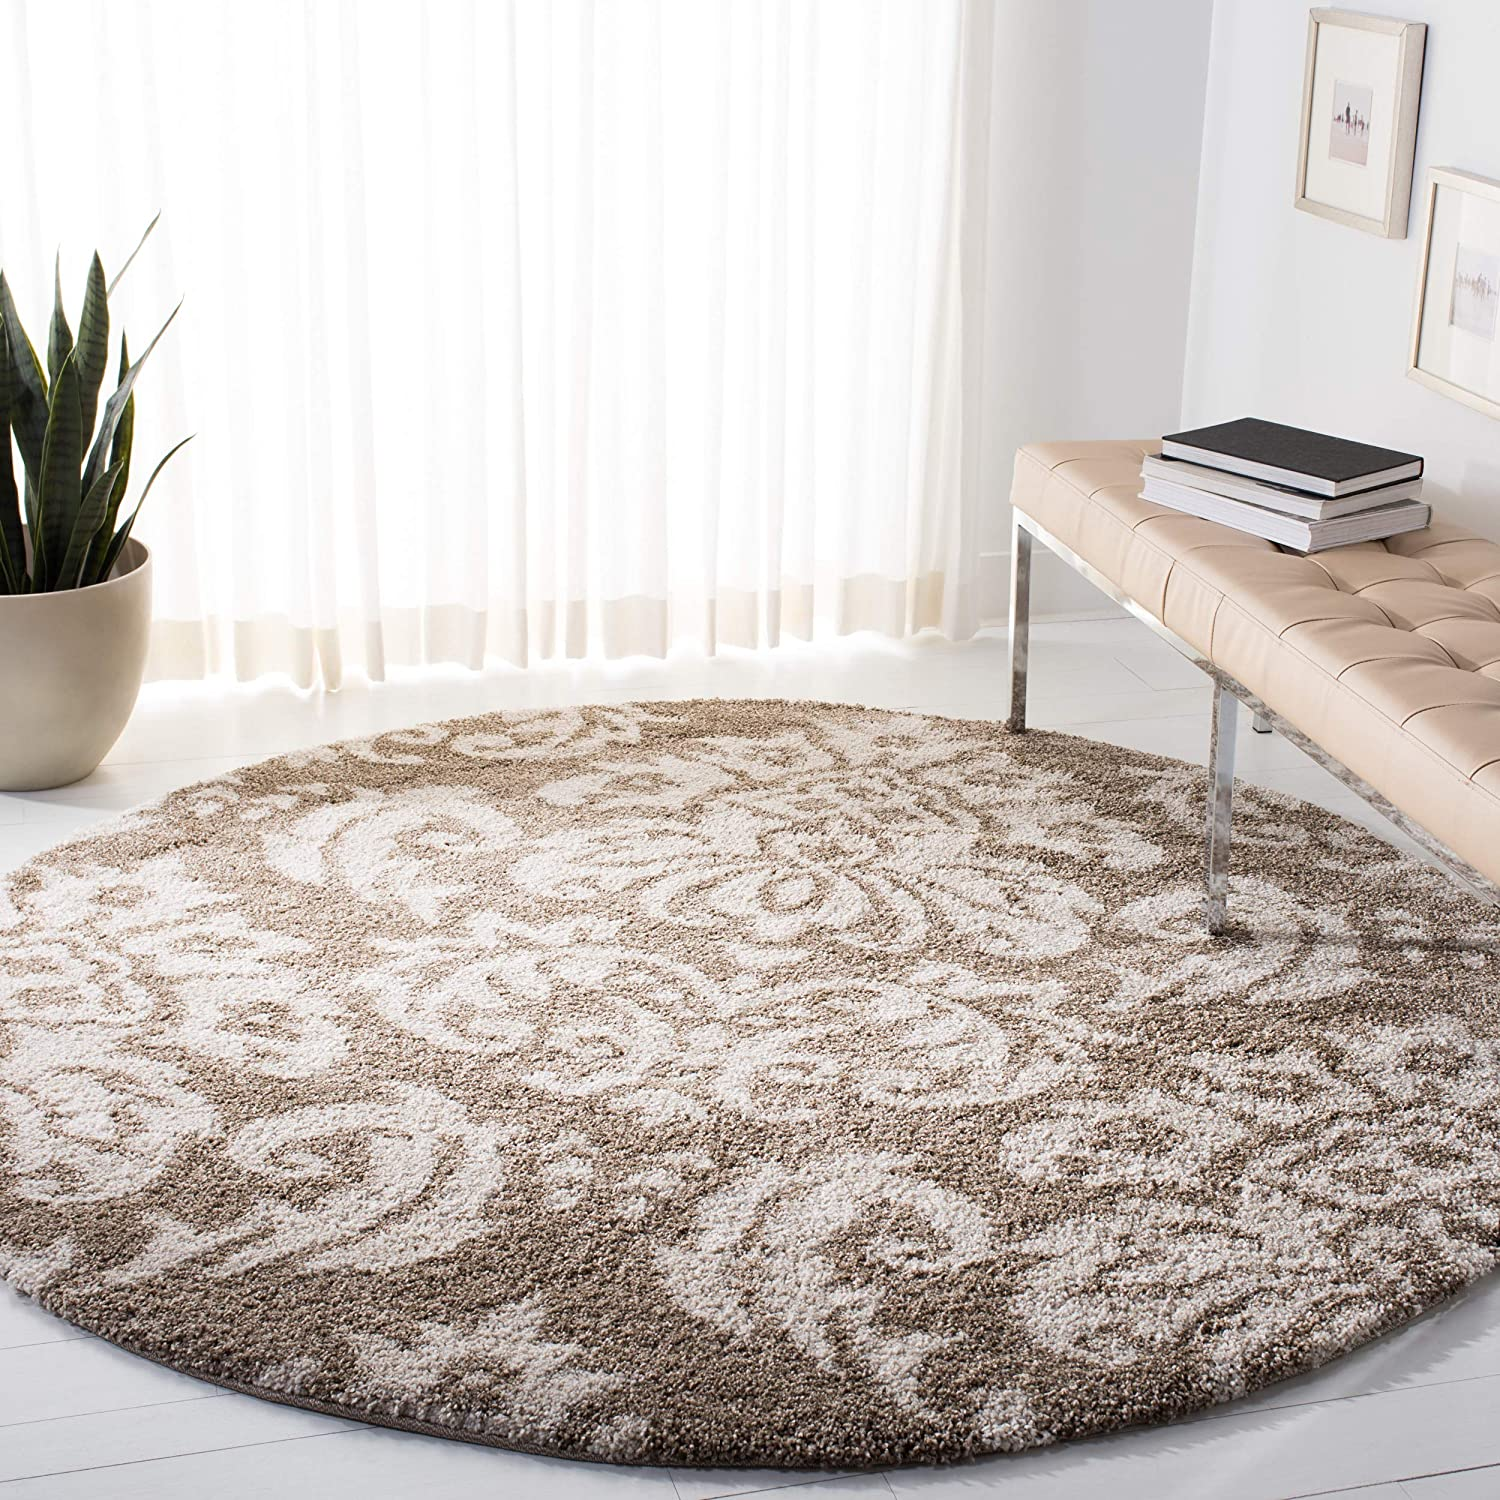 Safavieh SG46013114R Florida Shag Collection Beige Cream Round Area Rug, 4Feet in Diameter